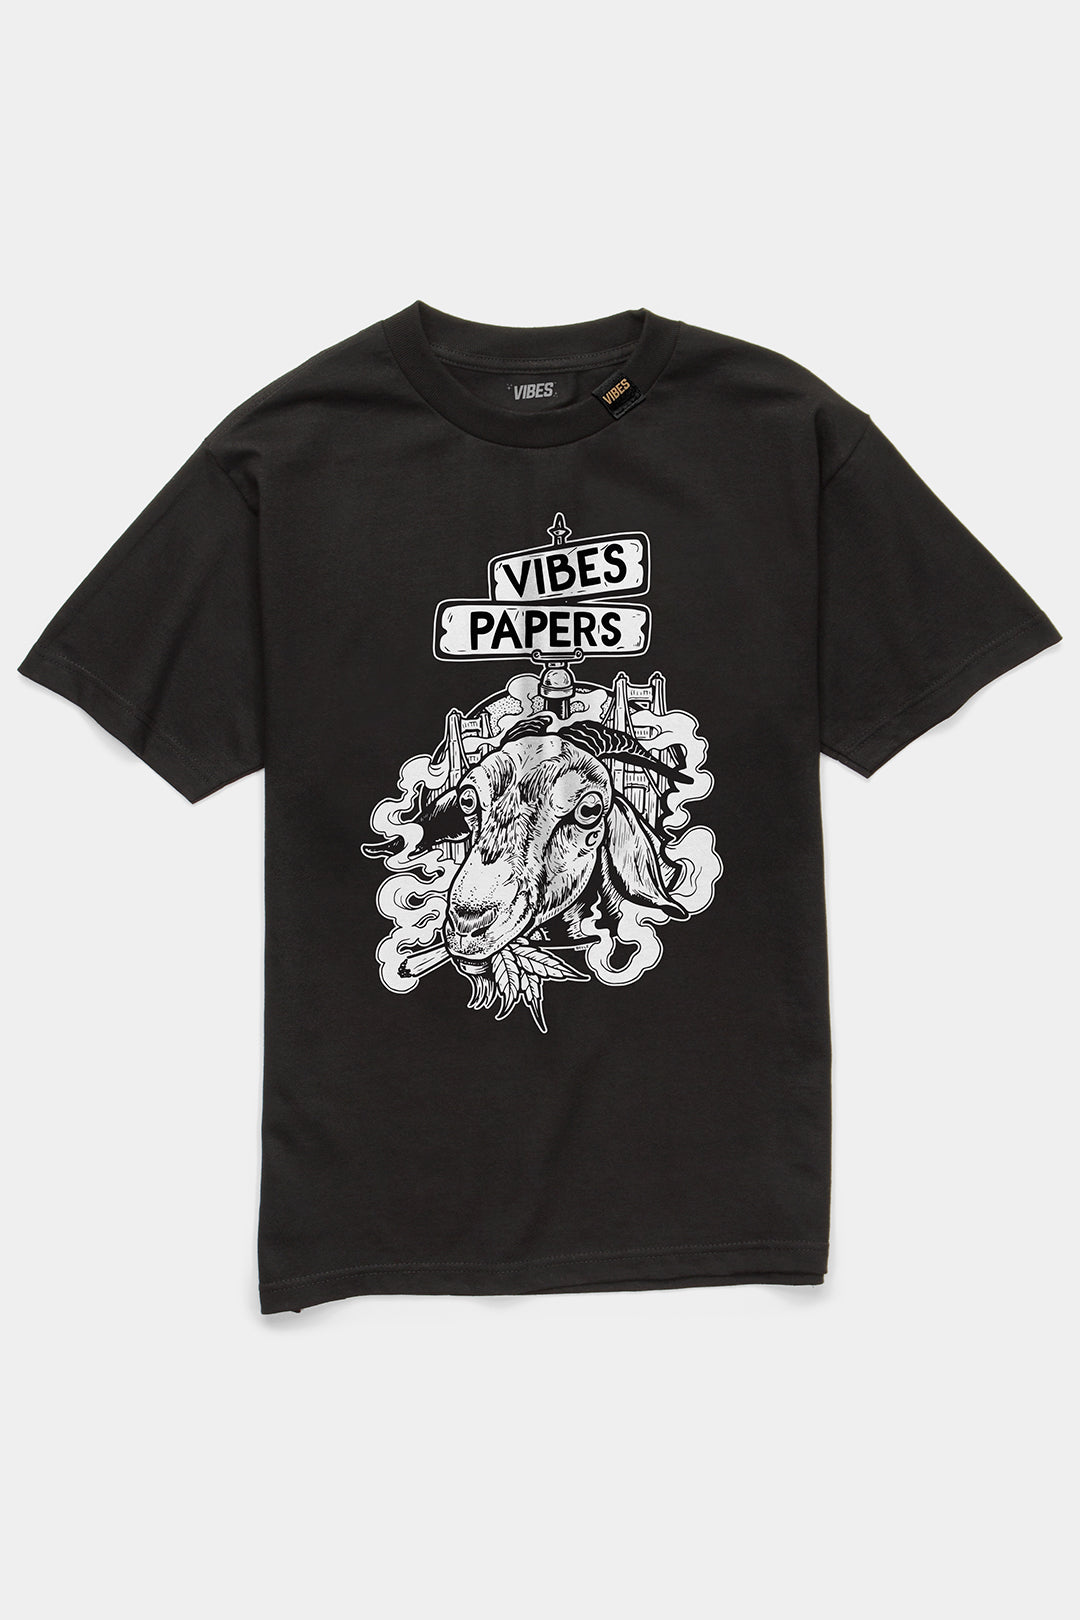 VIBES Goat Collection Black T Shirt